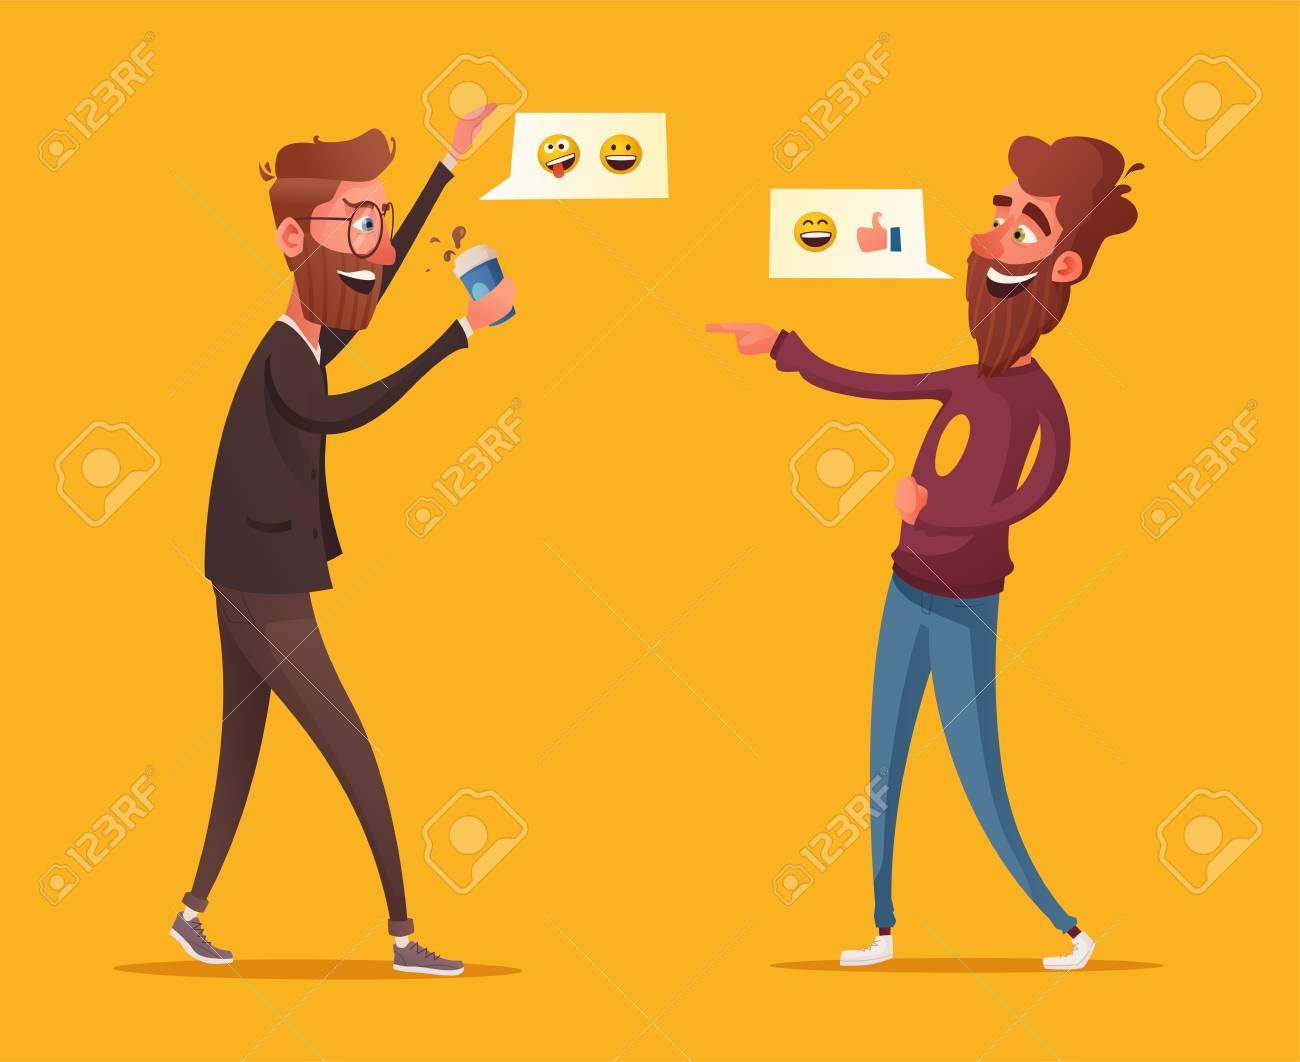 Two friends or colleagues having fun. Cartoon vector illustration. Loud laughter. Funny joke. Two bearded characters in office. Communicating male - 104910026